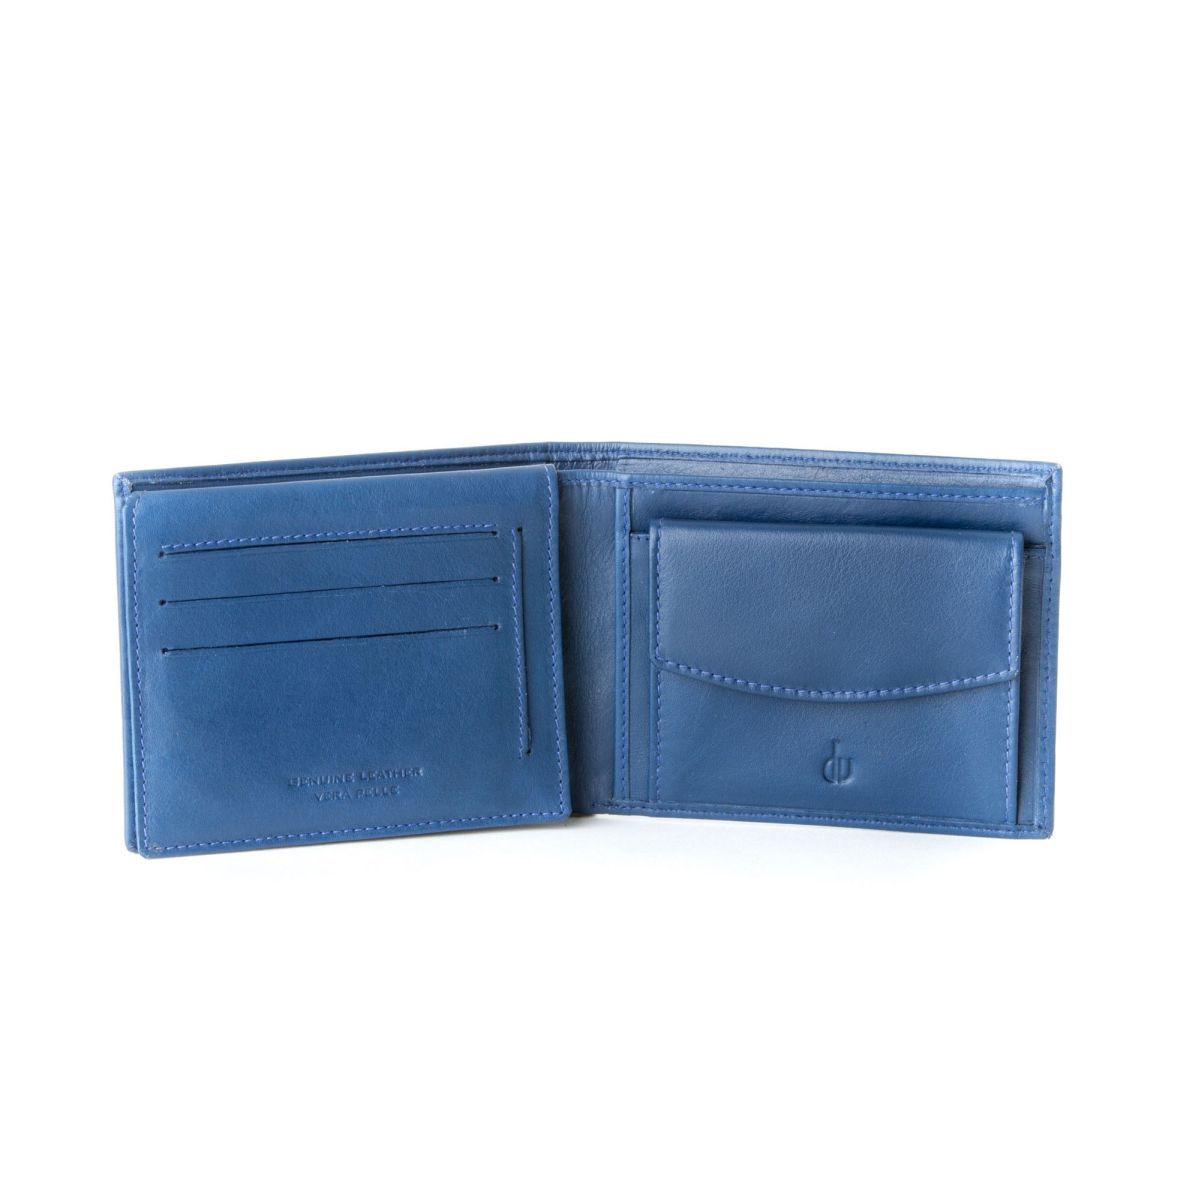 Leather classic wallet with coin purse and inside flap - Blue